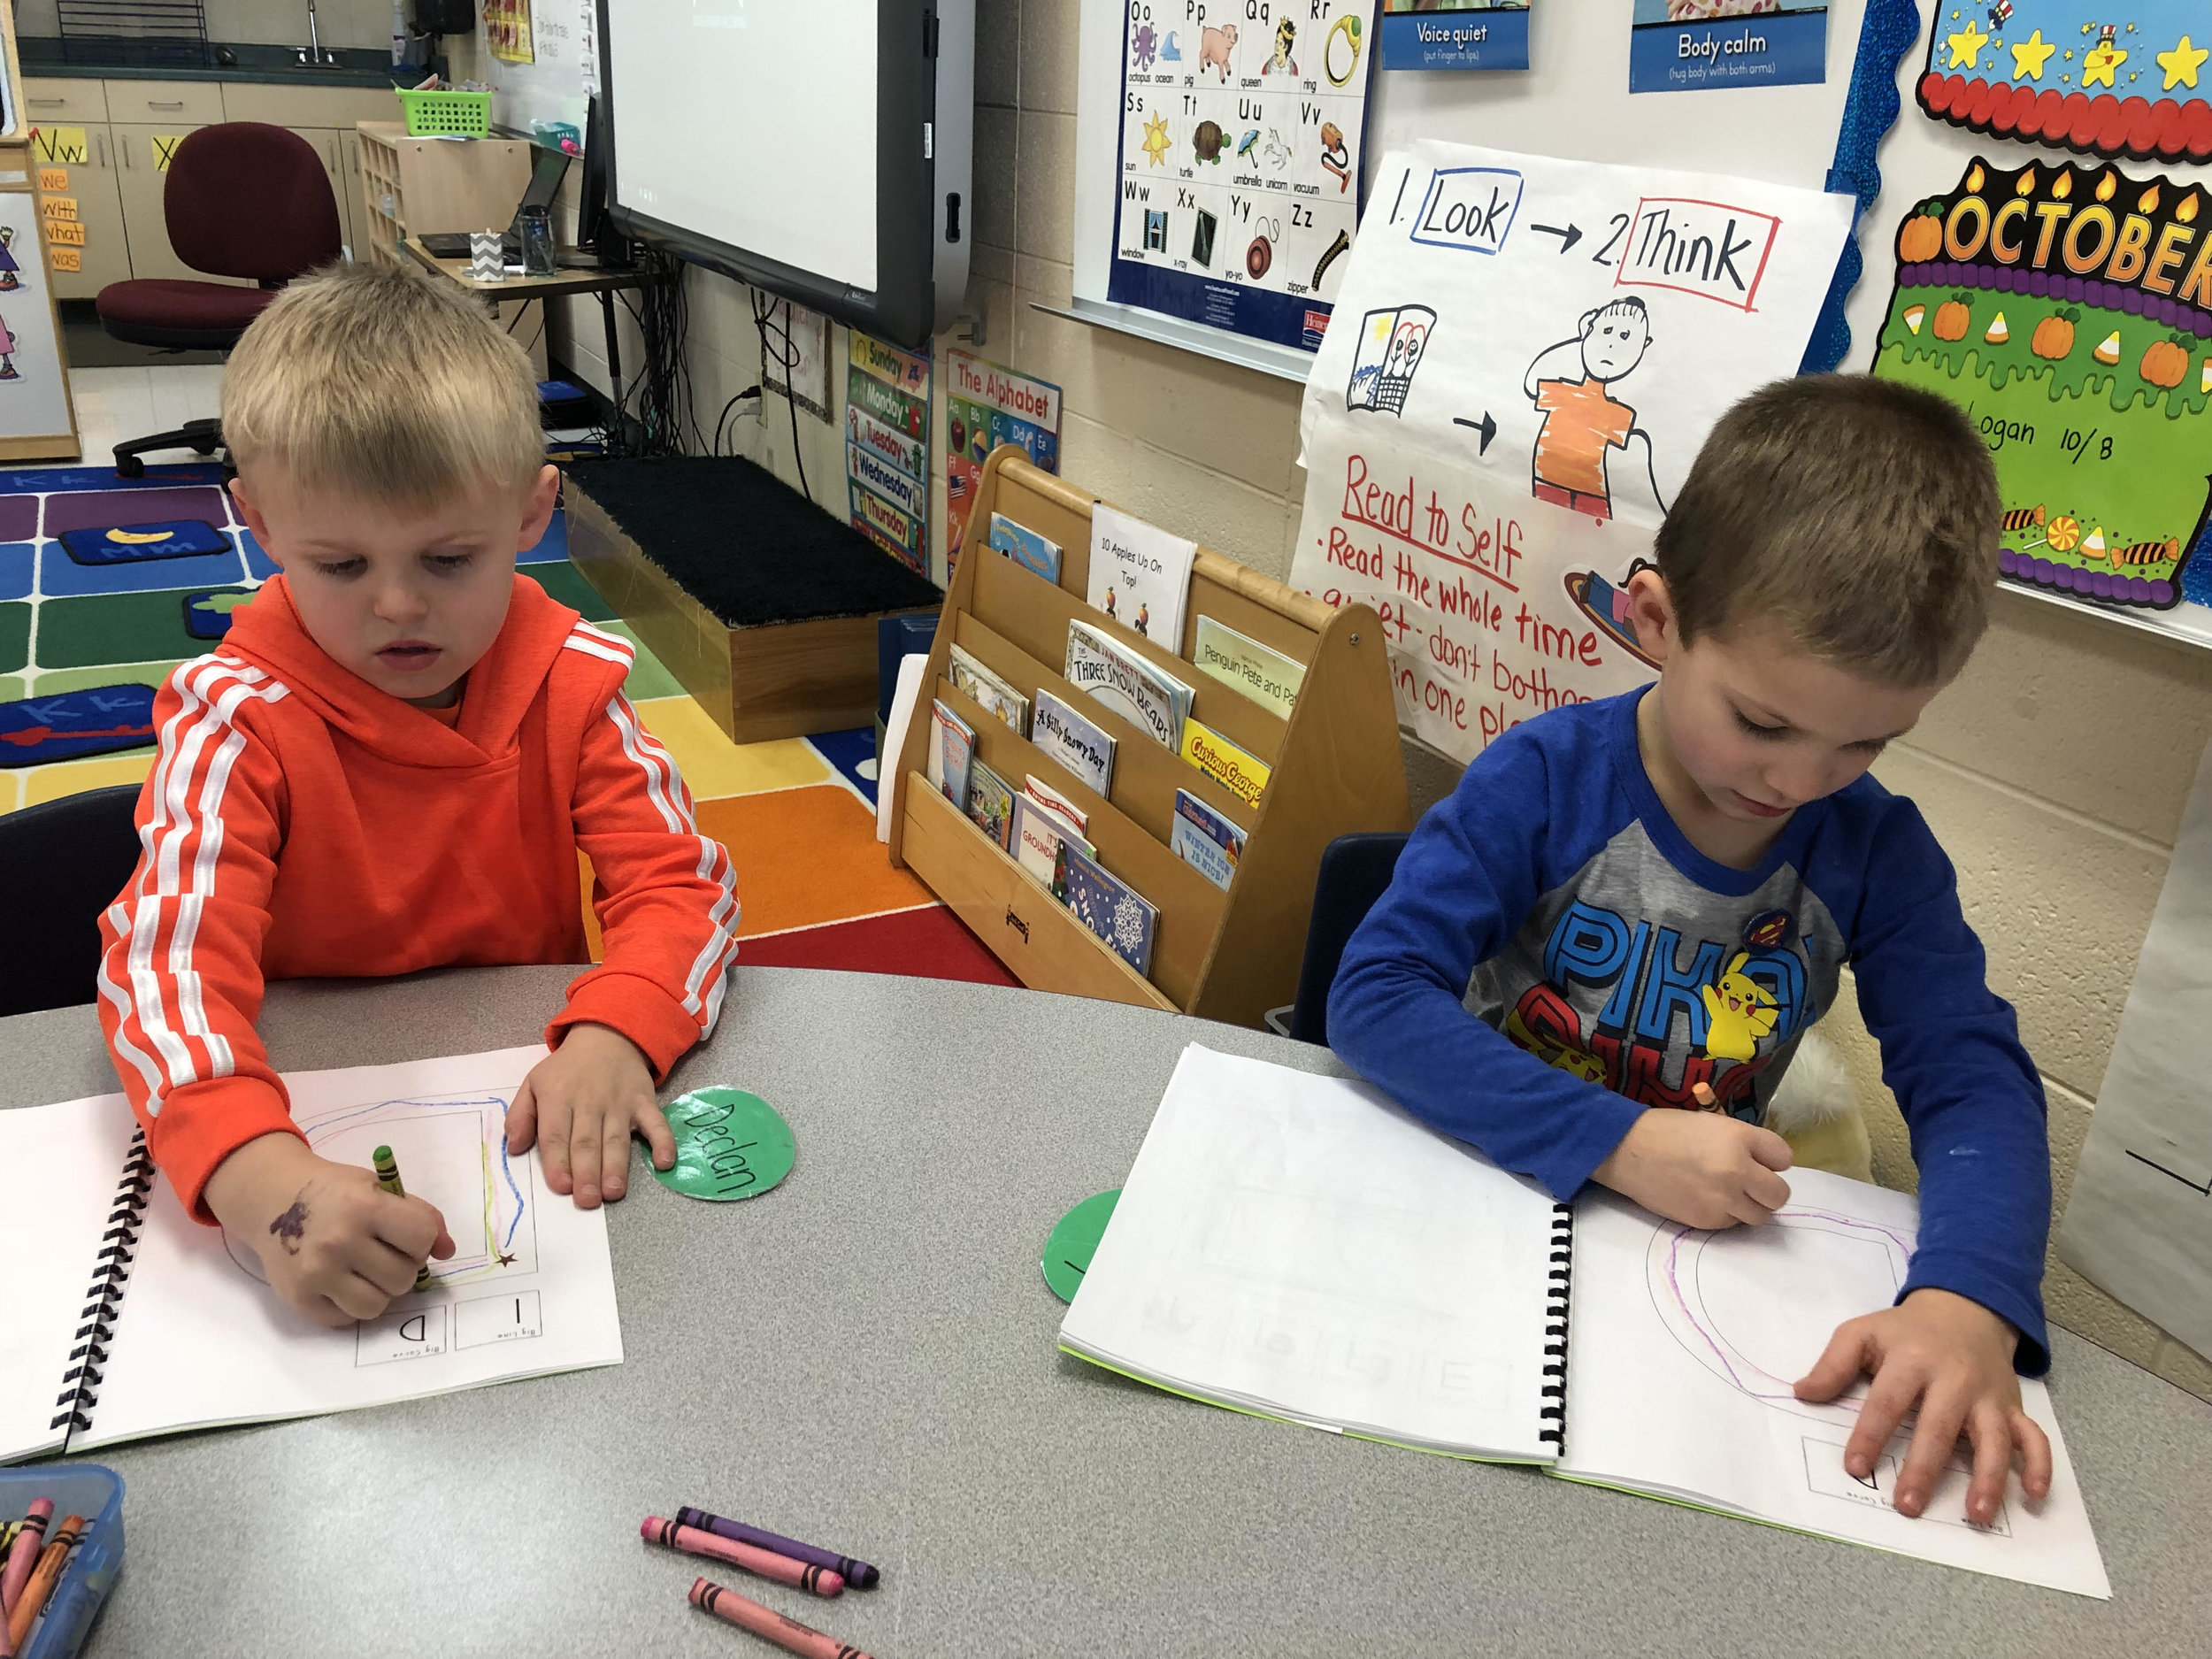 practicing writing the letter Dd